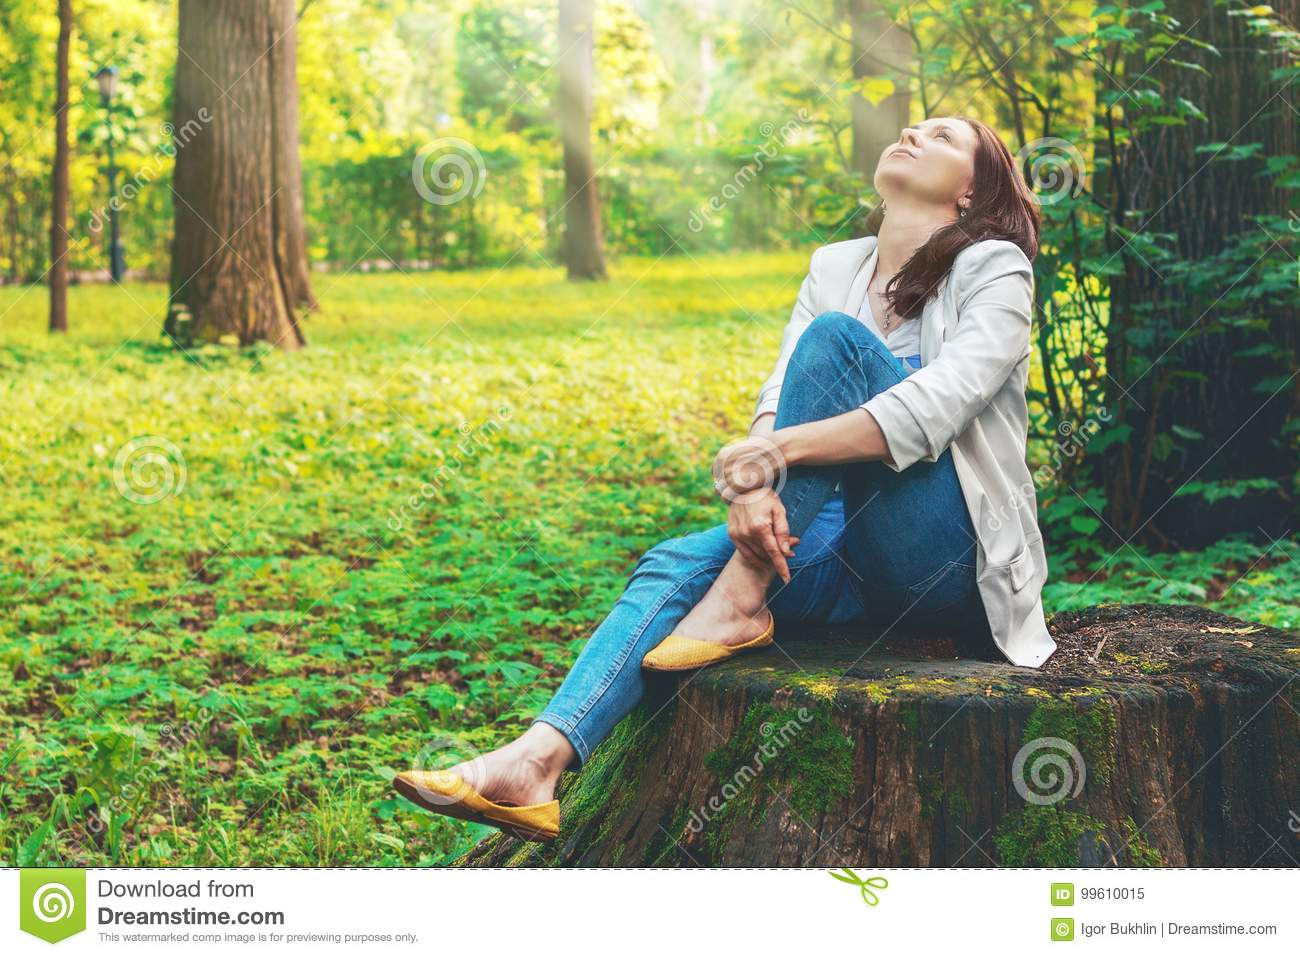 Cute woman is enjoying of picturesque nature. Camping, rest. Beautiful girl sits on a big old stump in the forest.